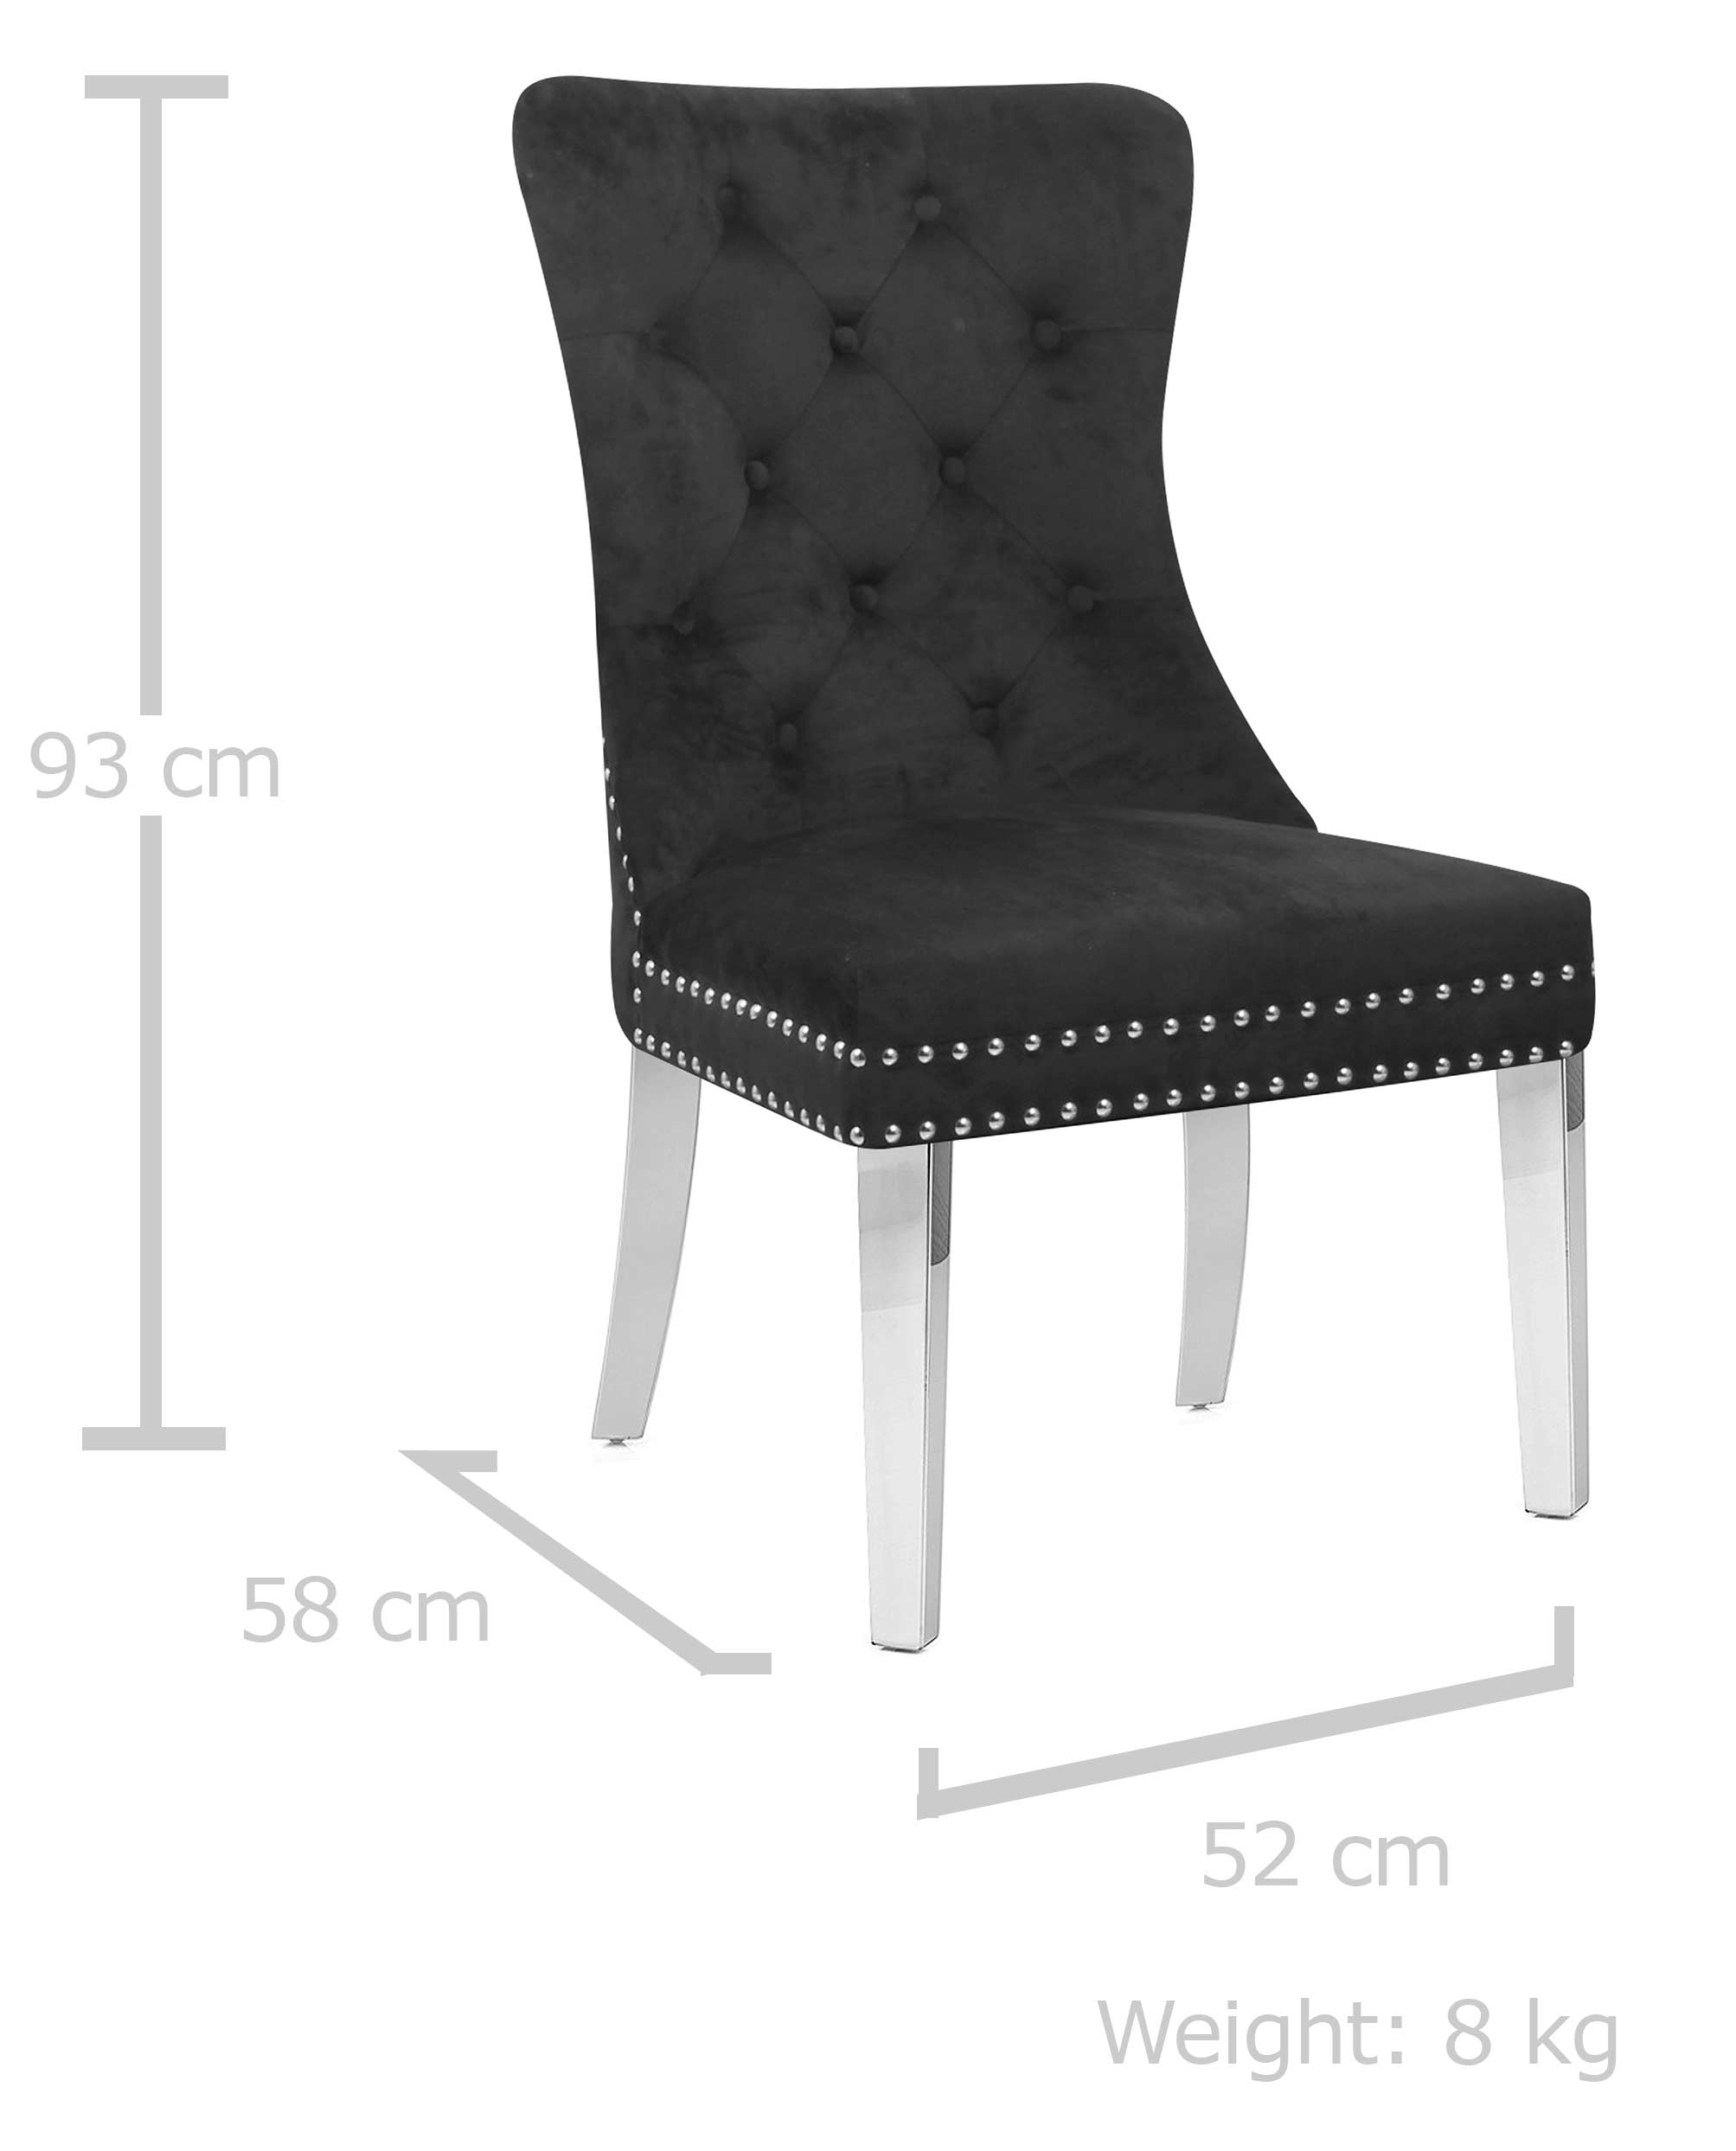 Nora Chair Black Makeup Chairs Stools Glamour Makeup Mirrors